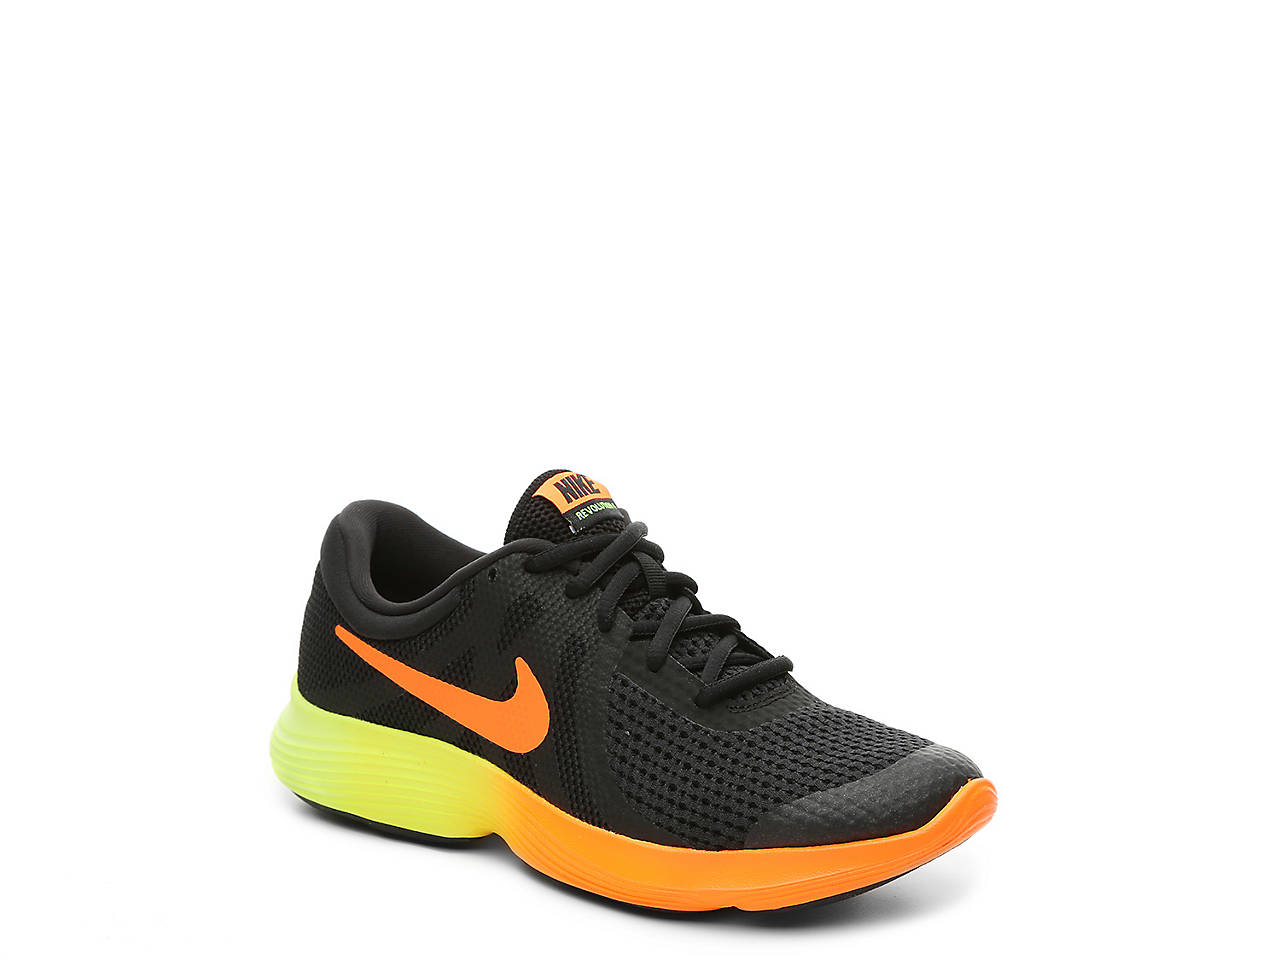 818d34818256 Nike Revolution 4 Youth Running Shoe Kids Shoes